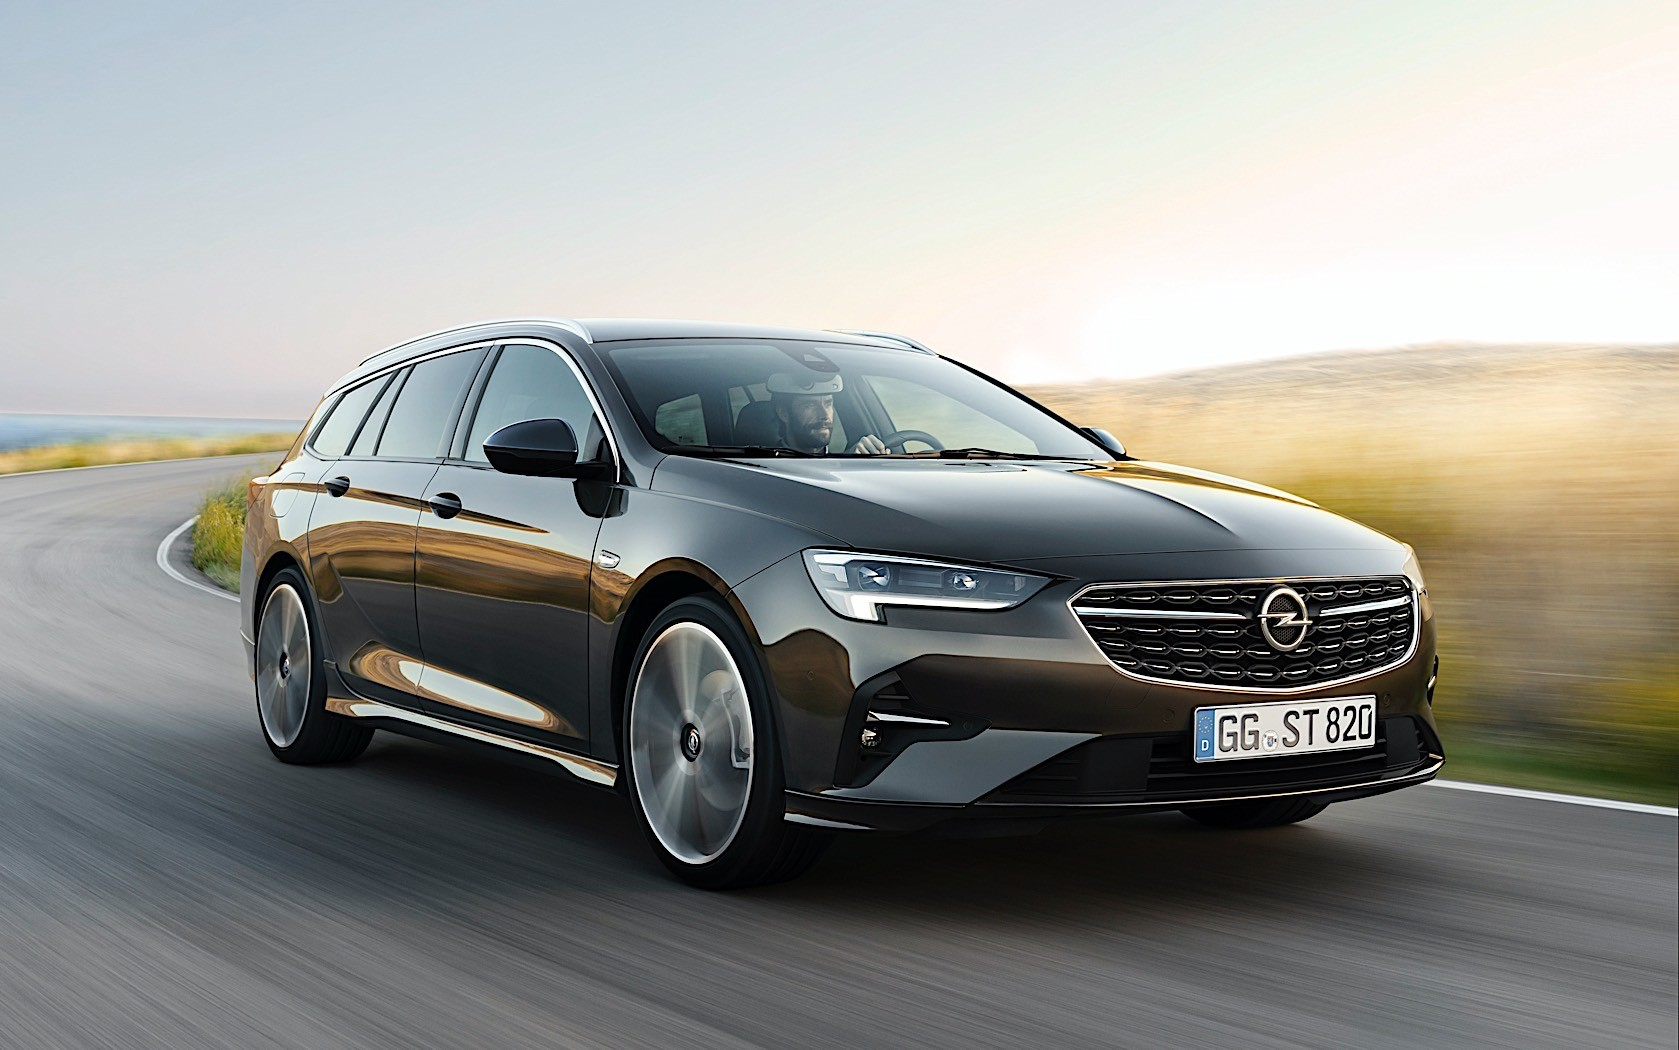 nouvelle opel insignia 2021  car wallpaper